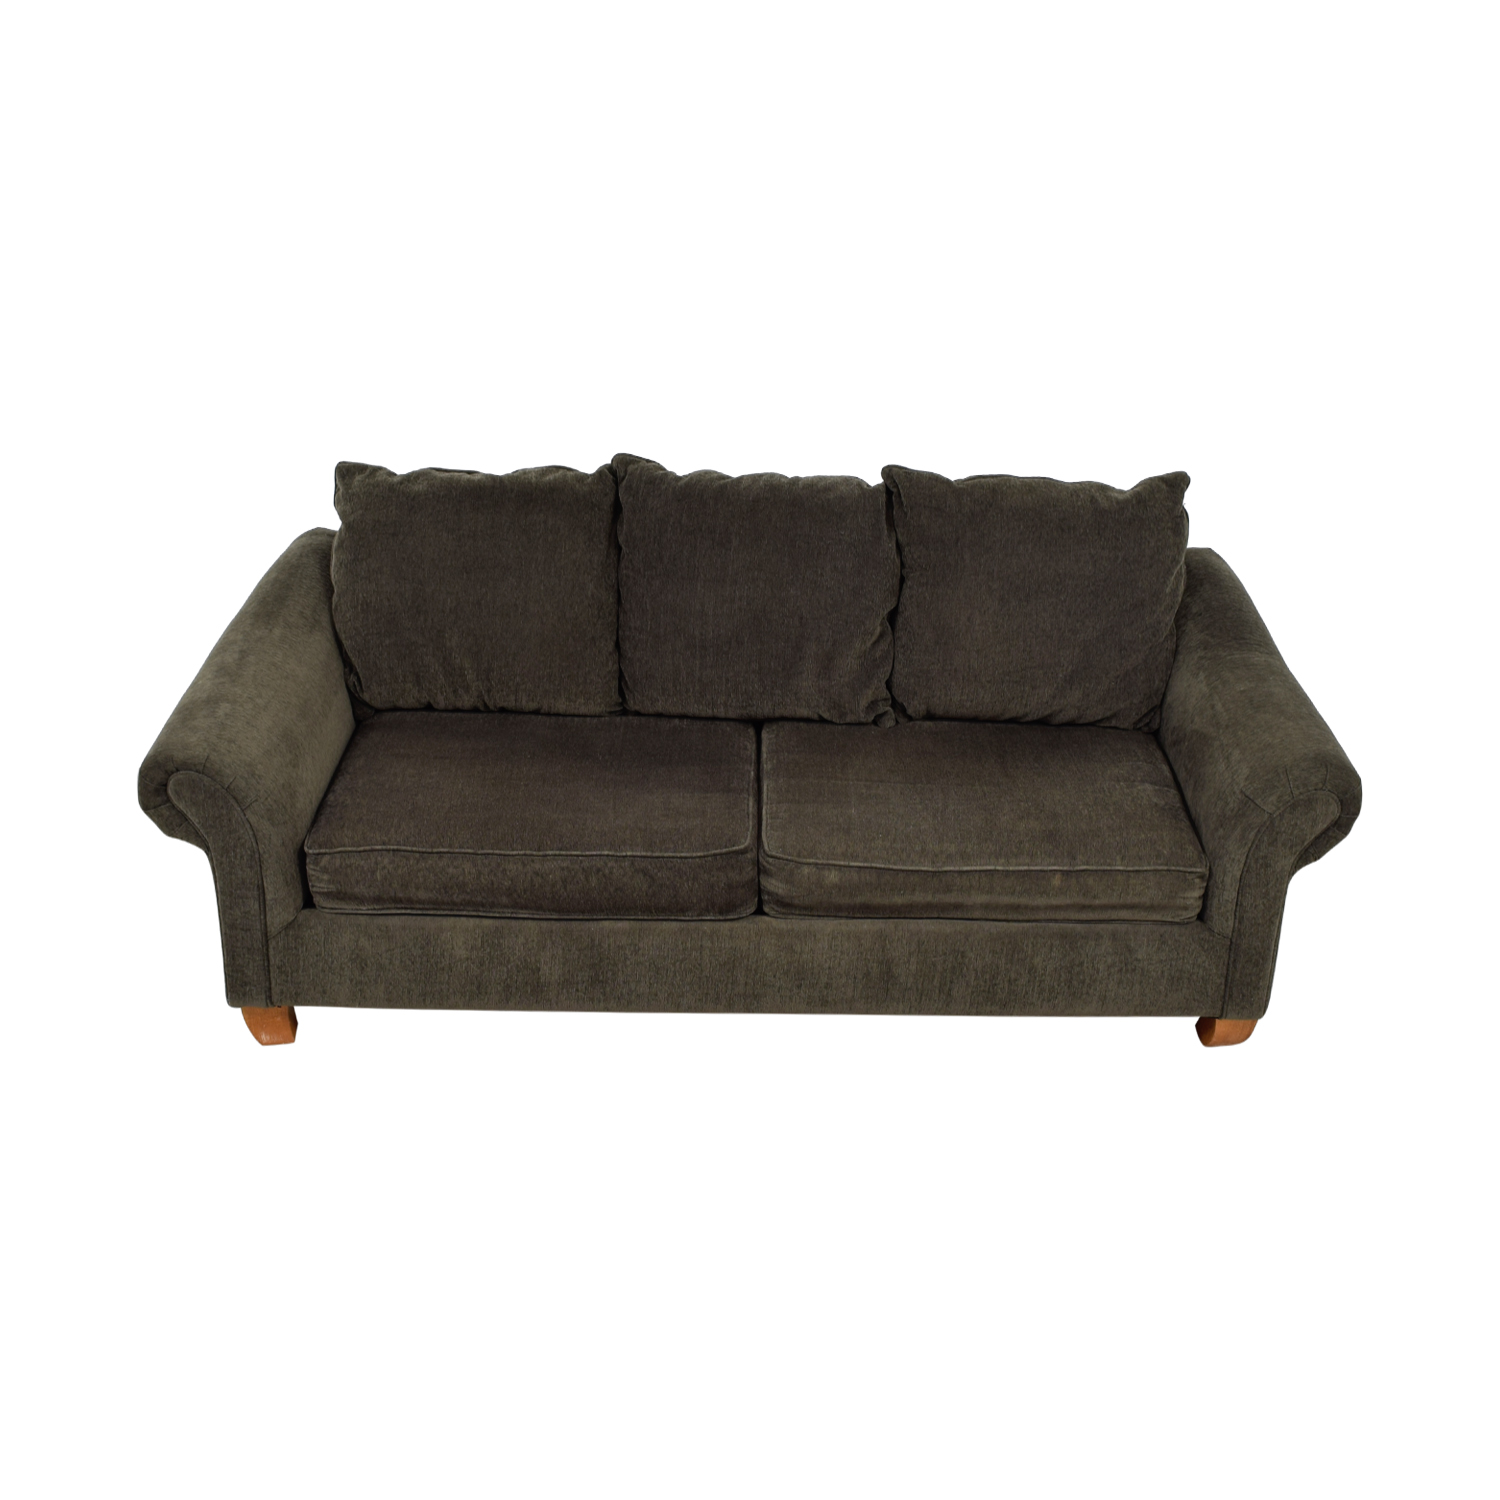 buy Hughes Furniture Brown Two-Cushion Curved Arm Sofa Hughes Furniture Sofas